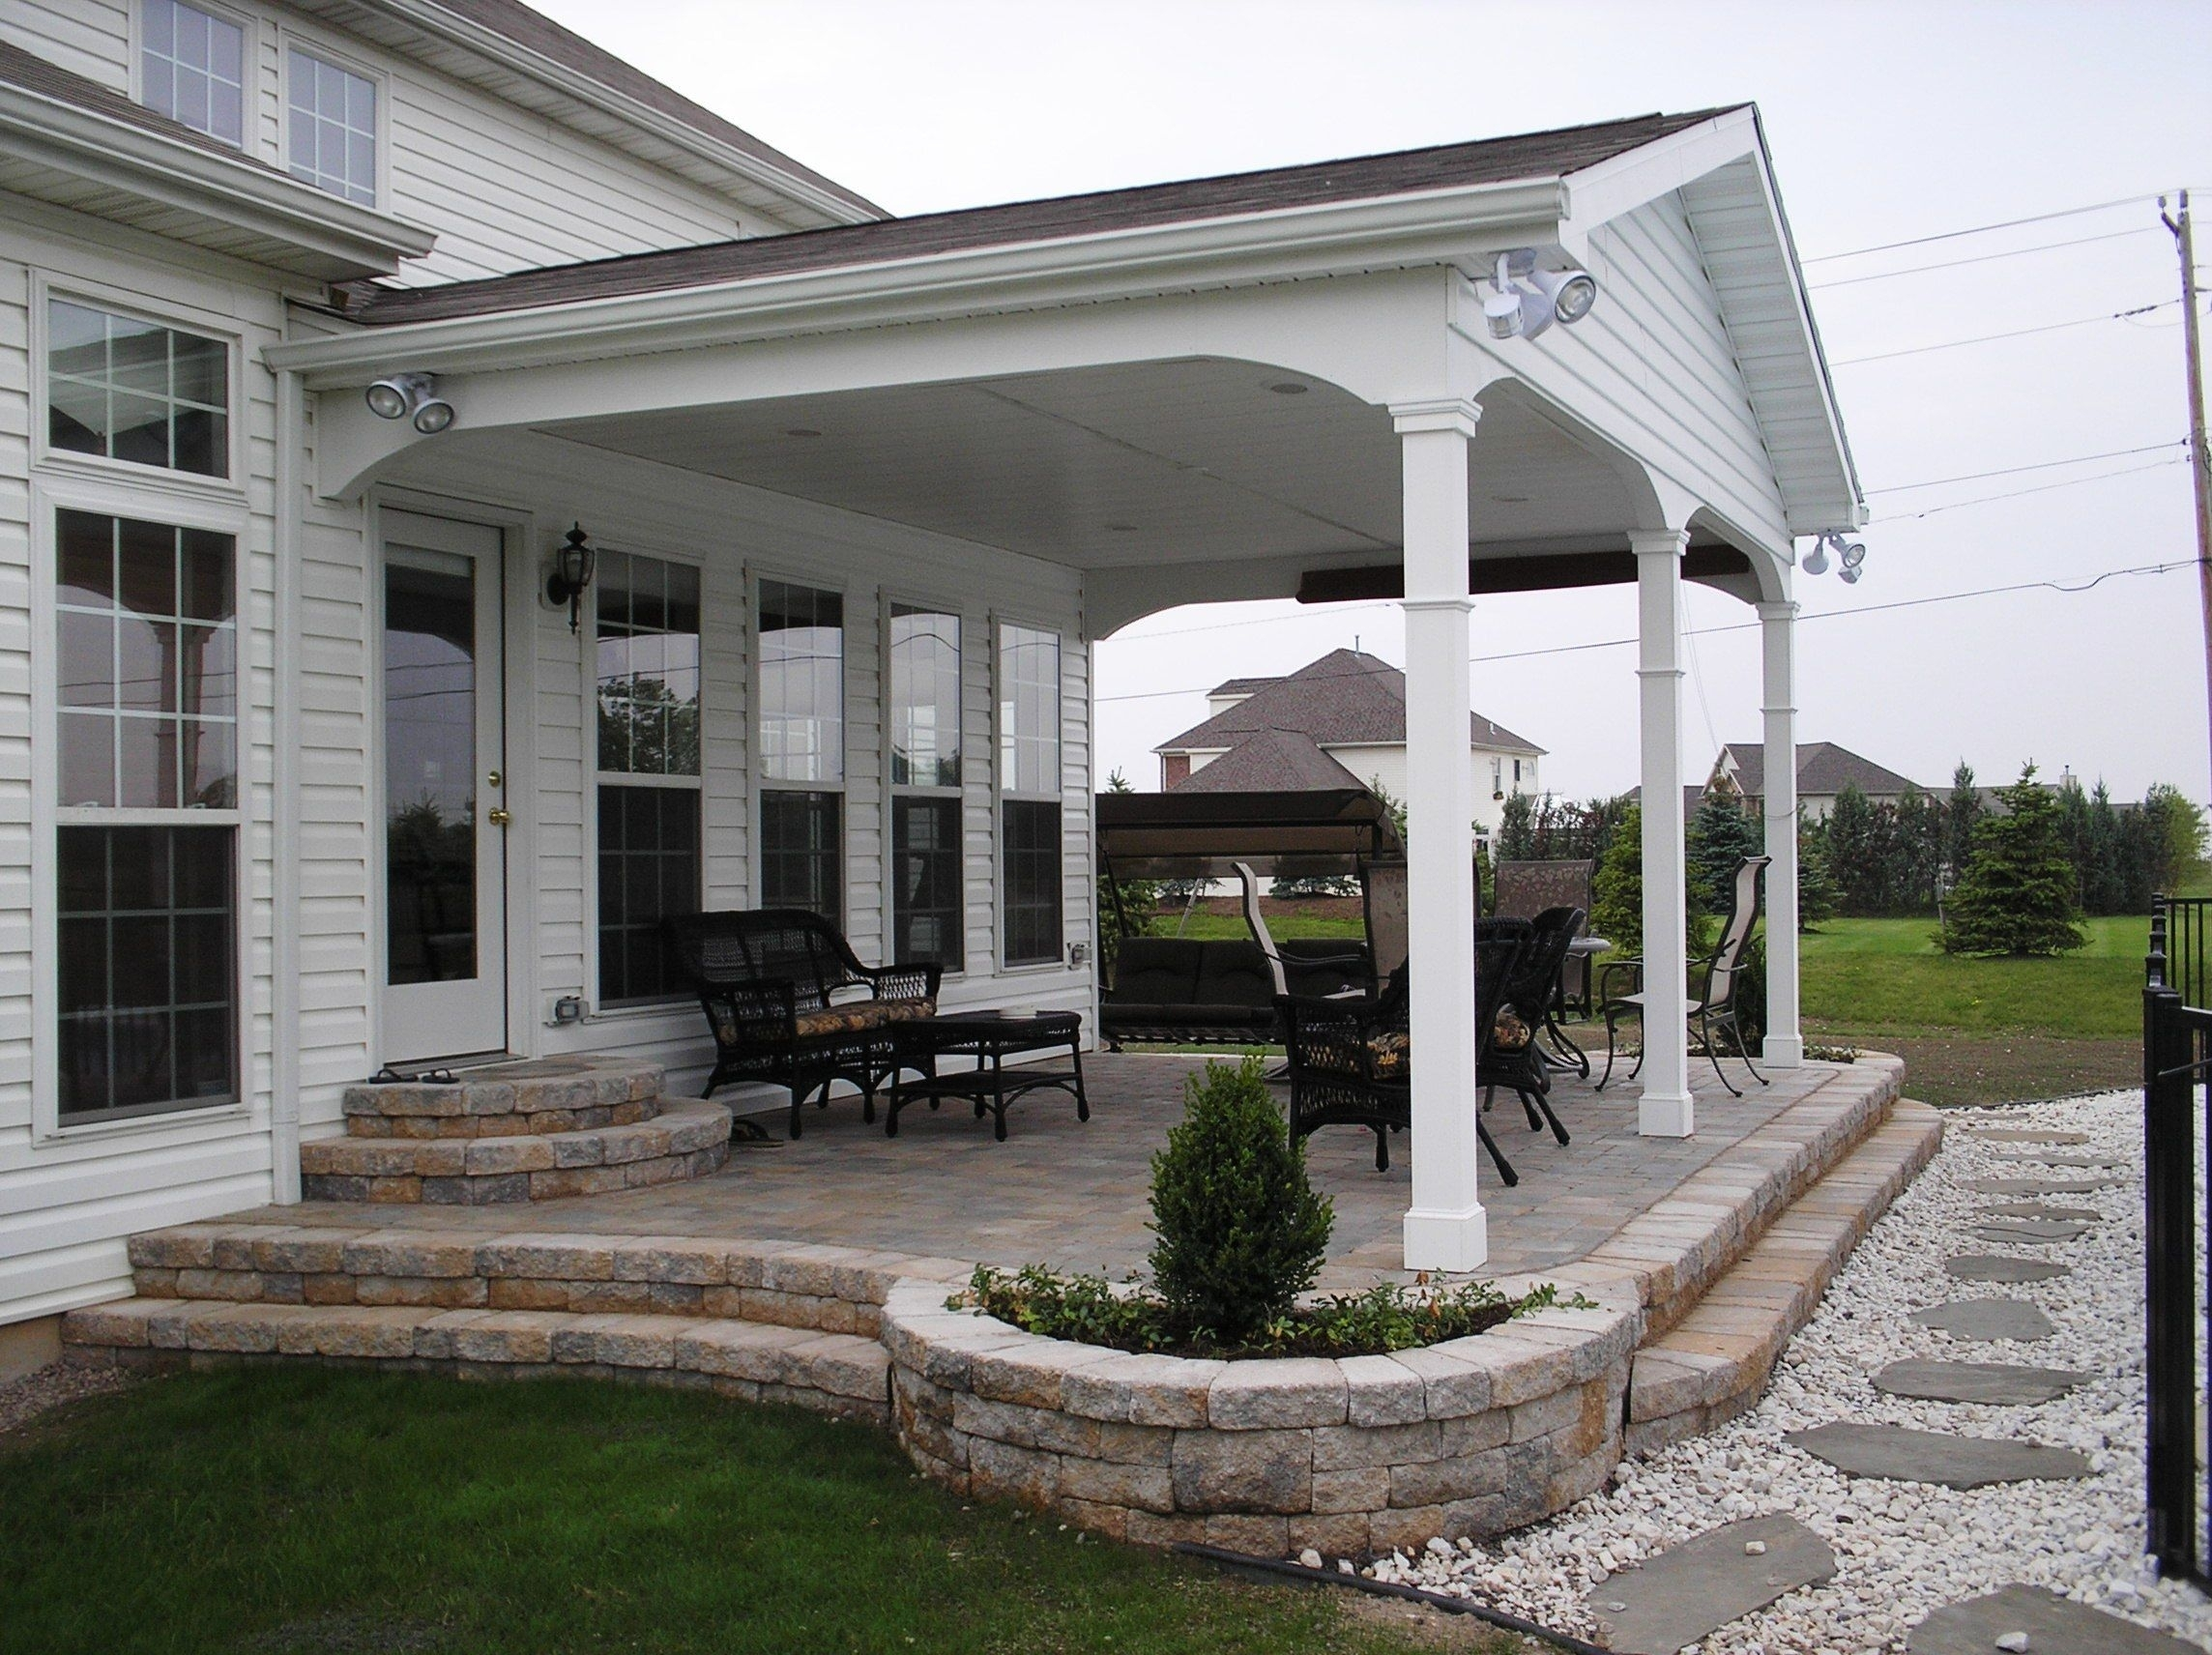 Covered Back Porch Ideas Pictures — Randolph Indoor and ... on Covered Back Deck Ideas id=79044